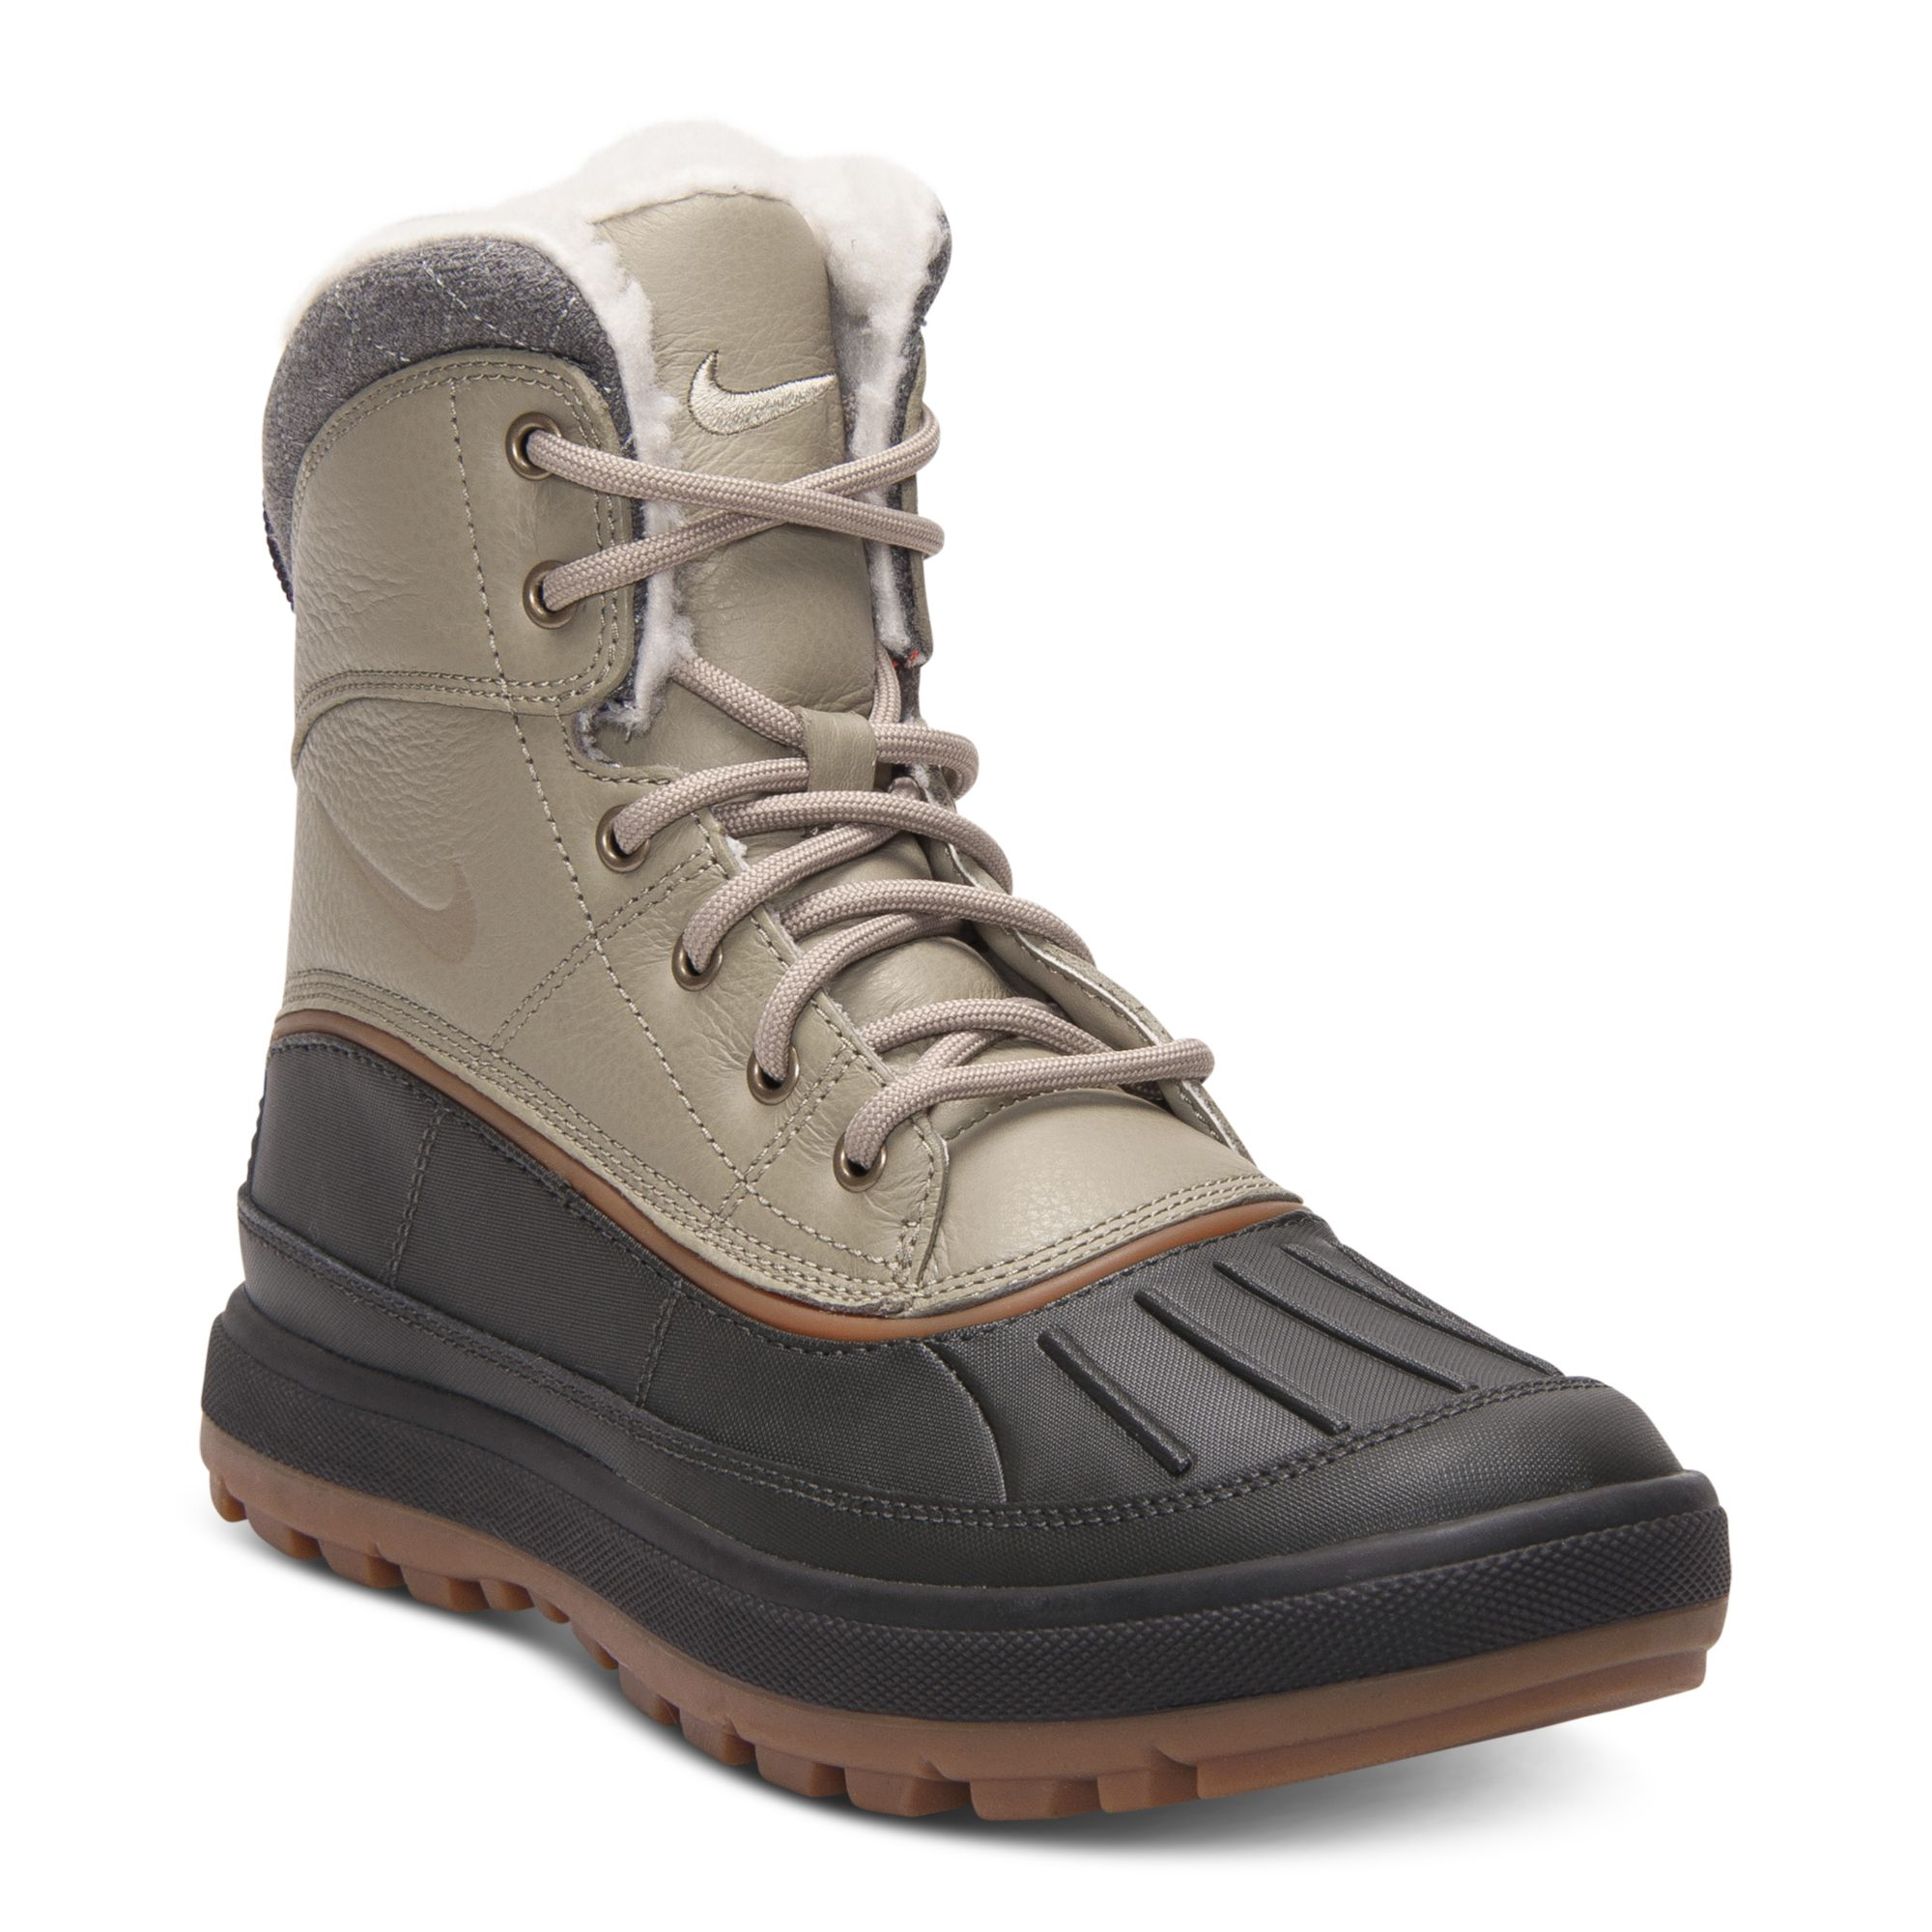 e0fd48fbe92c promo code nike lunar force 1 duck boot black 09423 8ccf2  coupon code for lyst  nike woodside ii outdoor boots in black for men 1bd2c 98cff